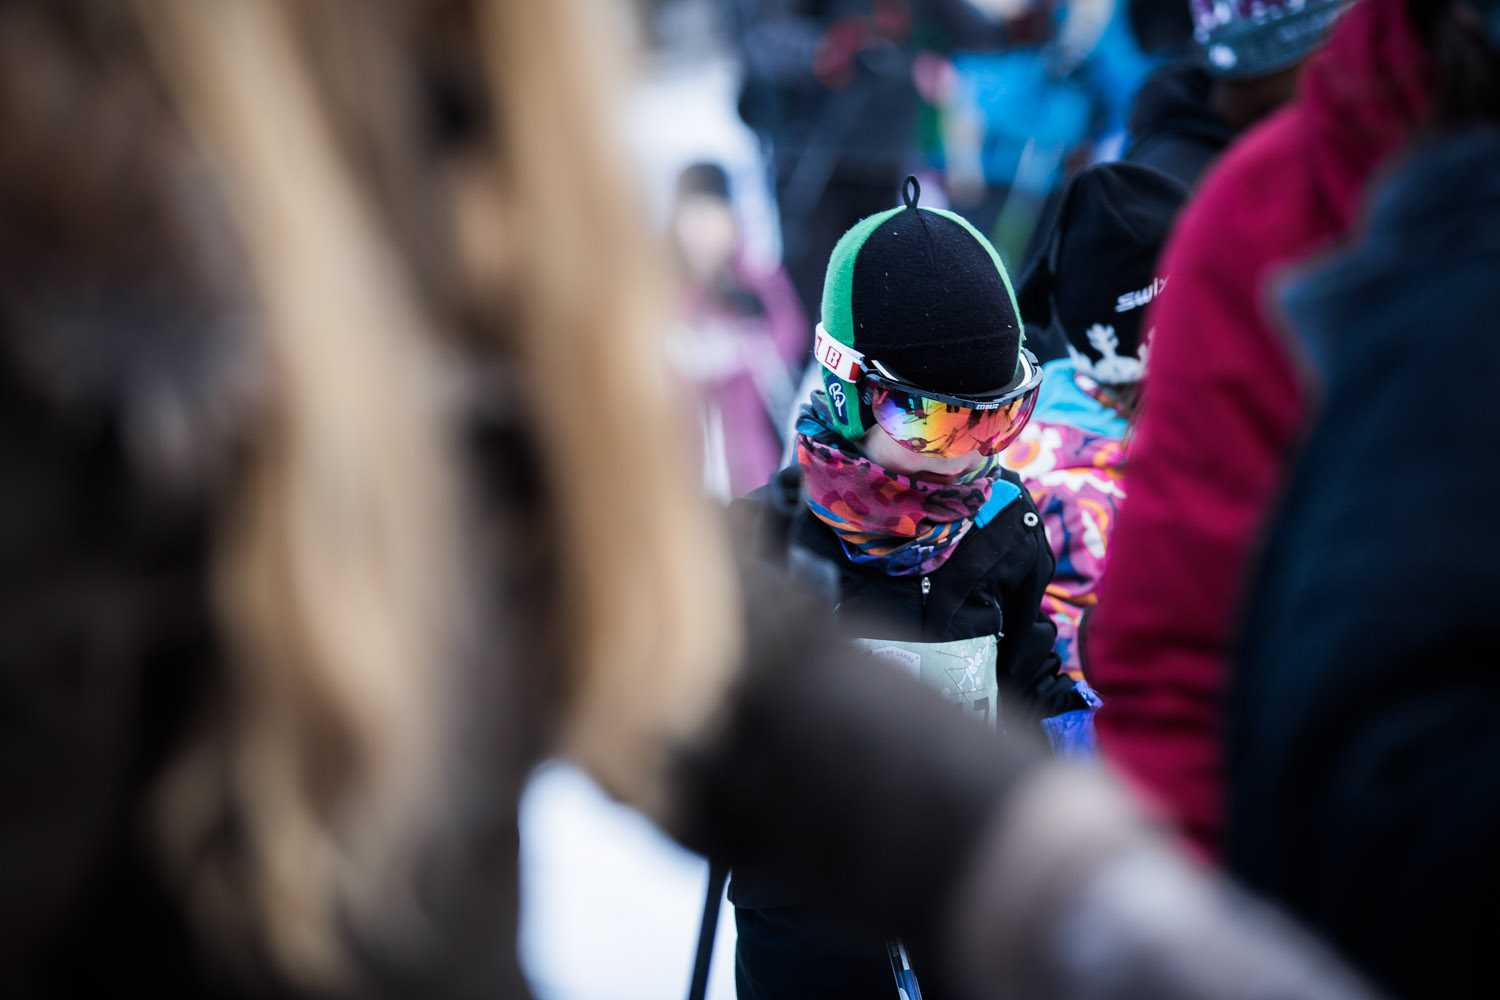 02-city of lakes-minne-loppet-minneapolis-minnesota-winter-kids-race-nordic-skiing-bliz-mahonen-photography.jpg